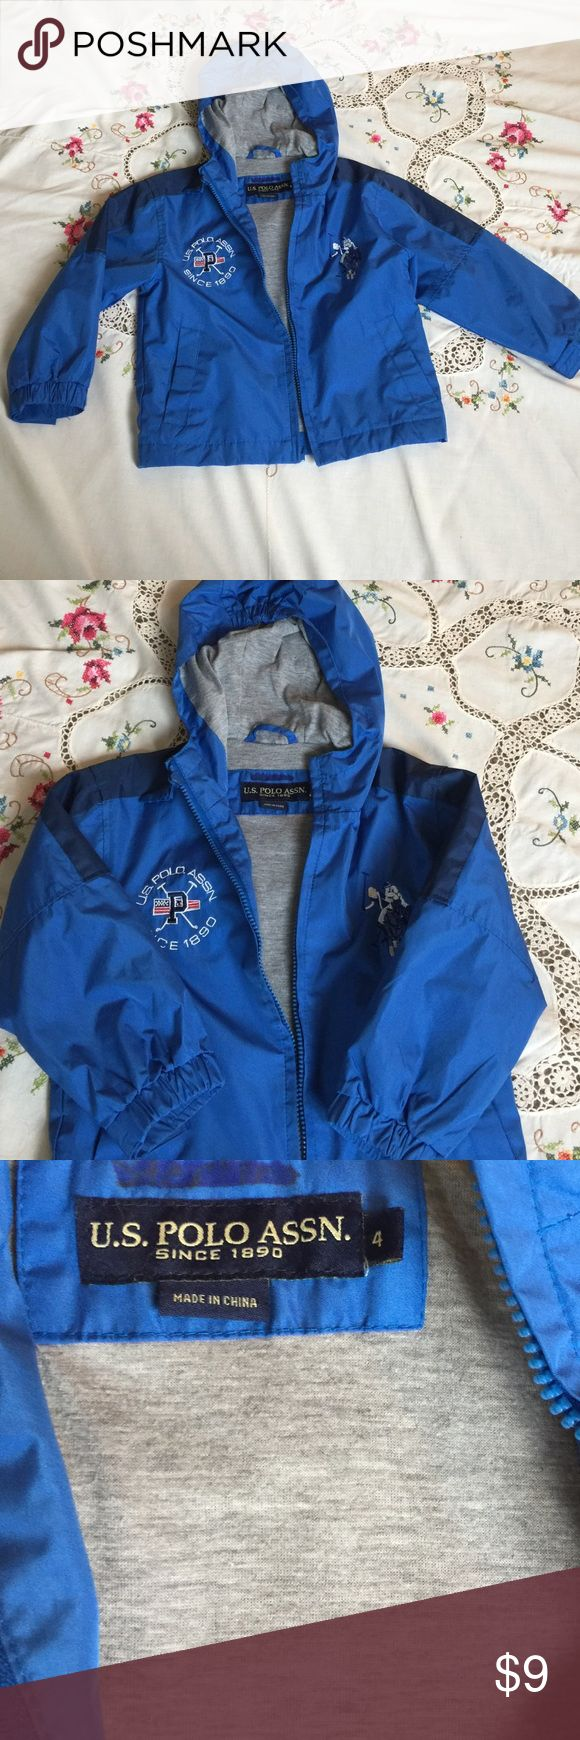 Raincoat, Boys, US Polo Association, Size 4 Nice blue raincoat! This lasted two seasons in our house but not worn often since we are in Southern California! Only mark is on the tag where I crossed my son's name out. No other tears or stains. There is a very cool hidden pocket in the lining. ☺️ U.S. Polo Assn. Jackets & Coats Raincoats